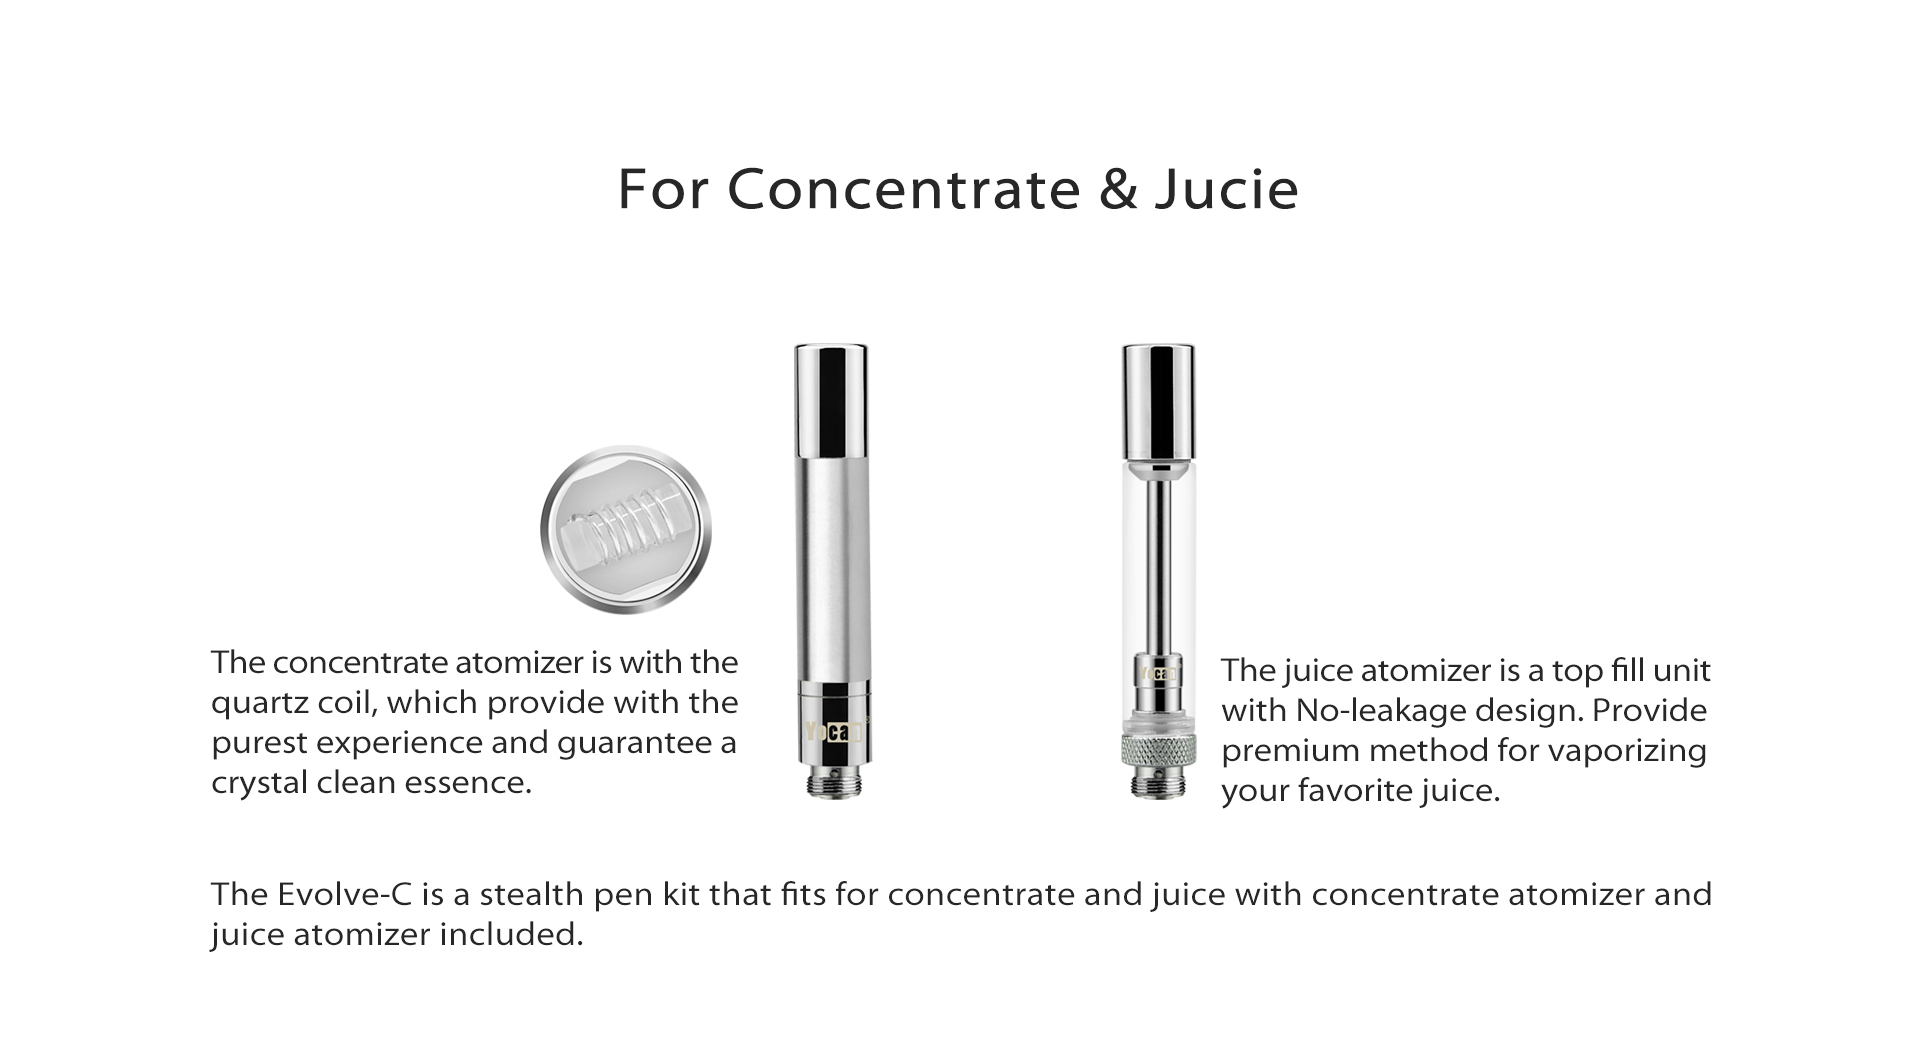 The Yocan Evolve C is a pen-style vaporizer designed for use with both waxes and oils.